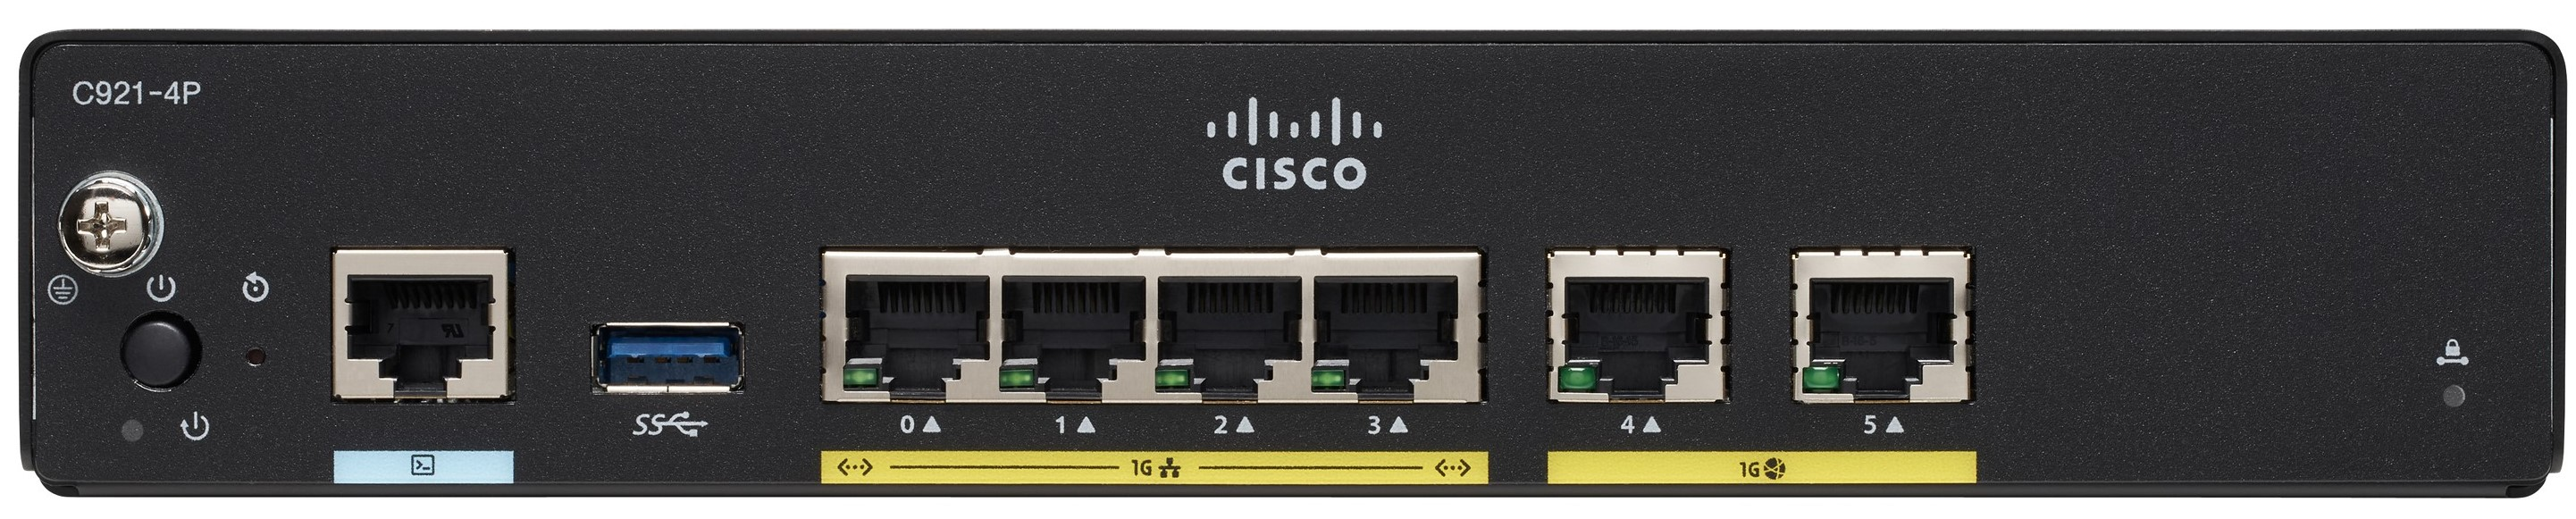 Cisco 900 Series Integrated Services Router (ISR)